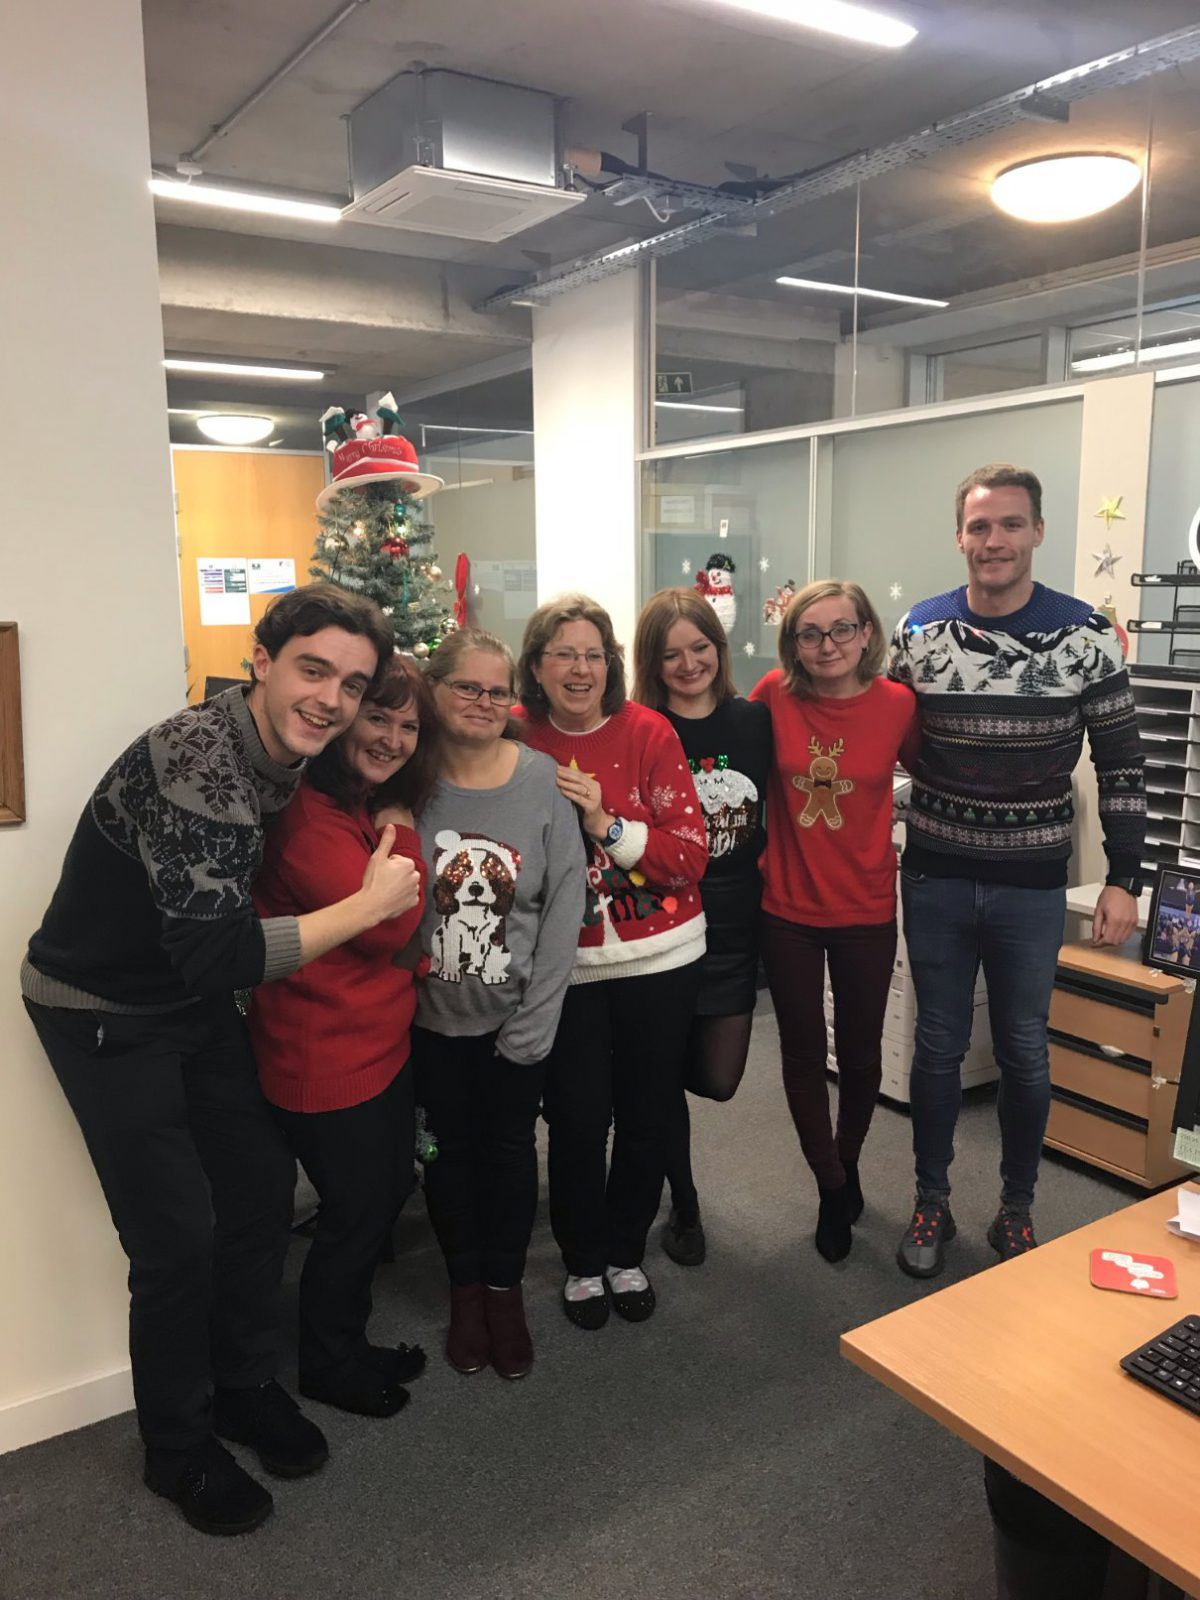 staff in their festive jumpers